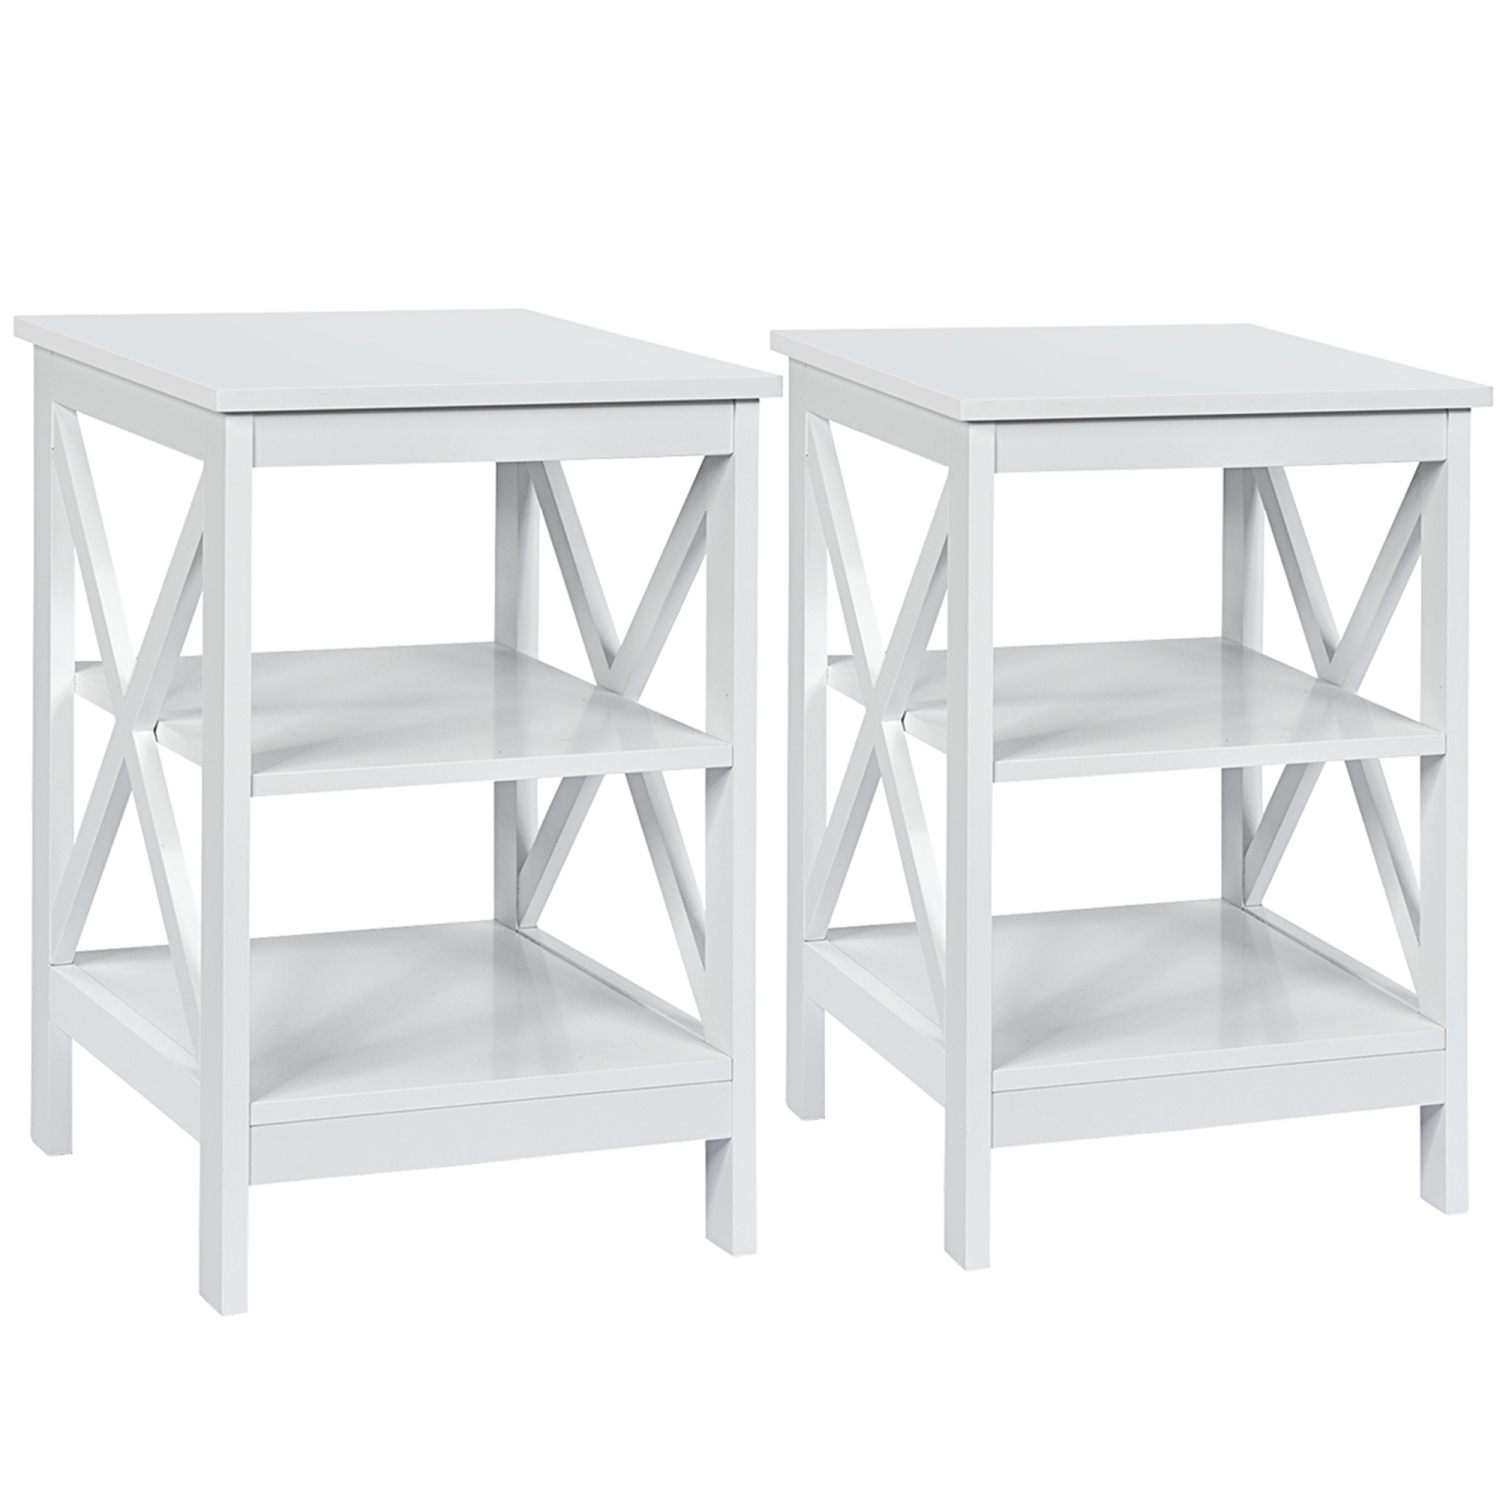 Gymax 2 Pcs 3 Tier Nightstand End Table X Design Storage Display Shelf Living Room Best Buy Canada